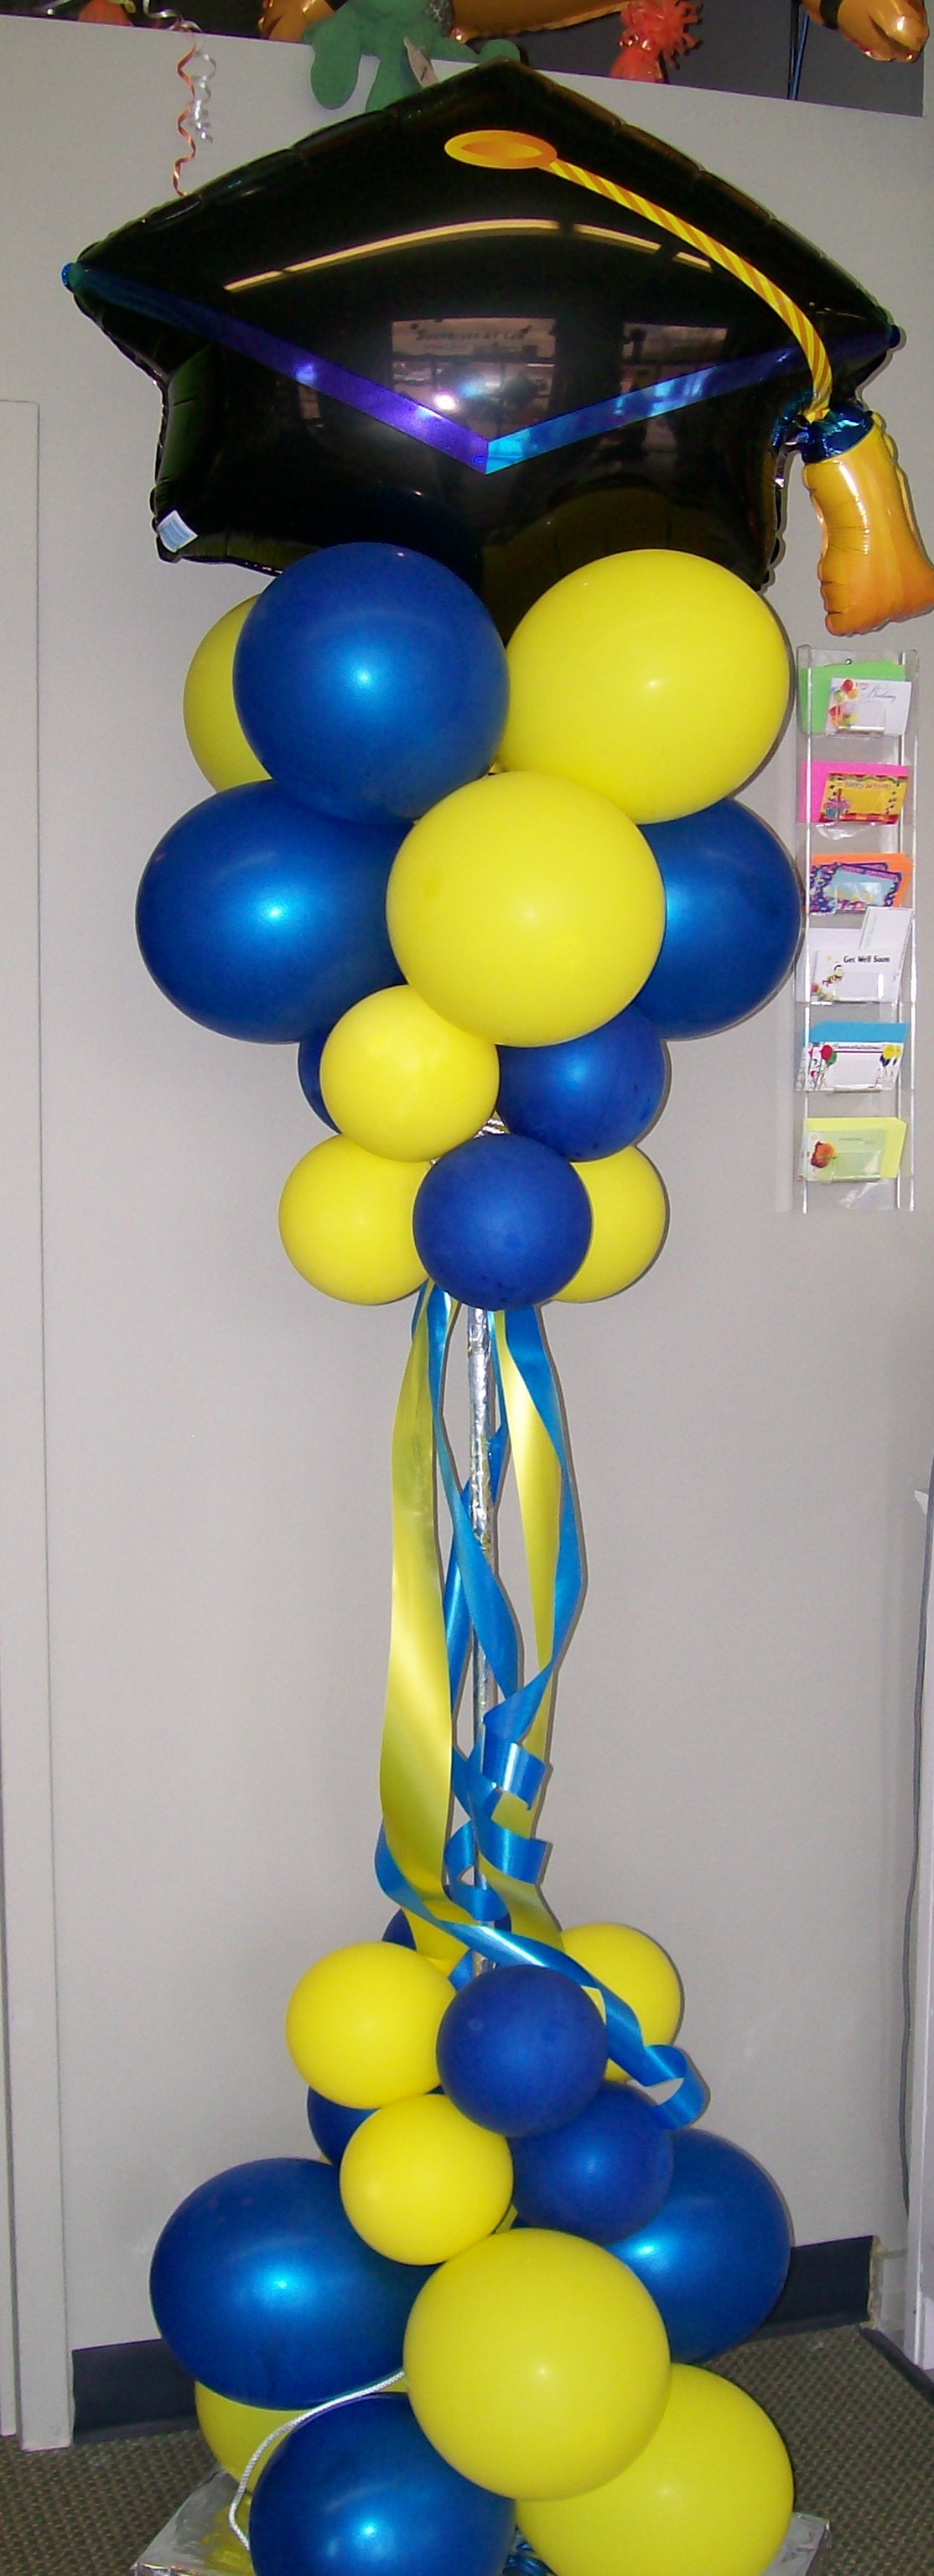 Graduation Balloon Column.JPG